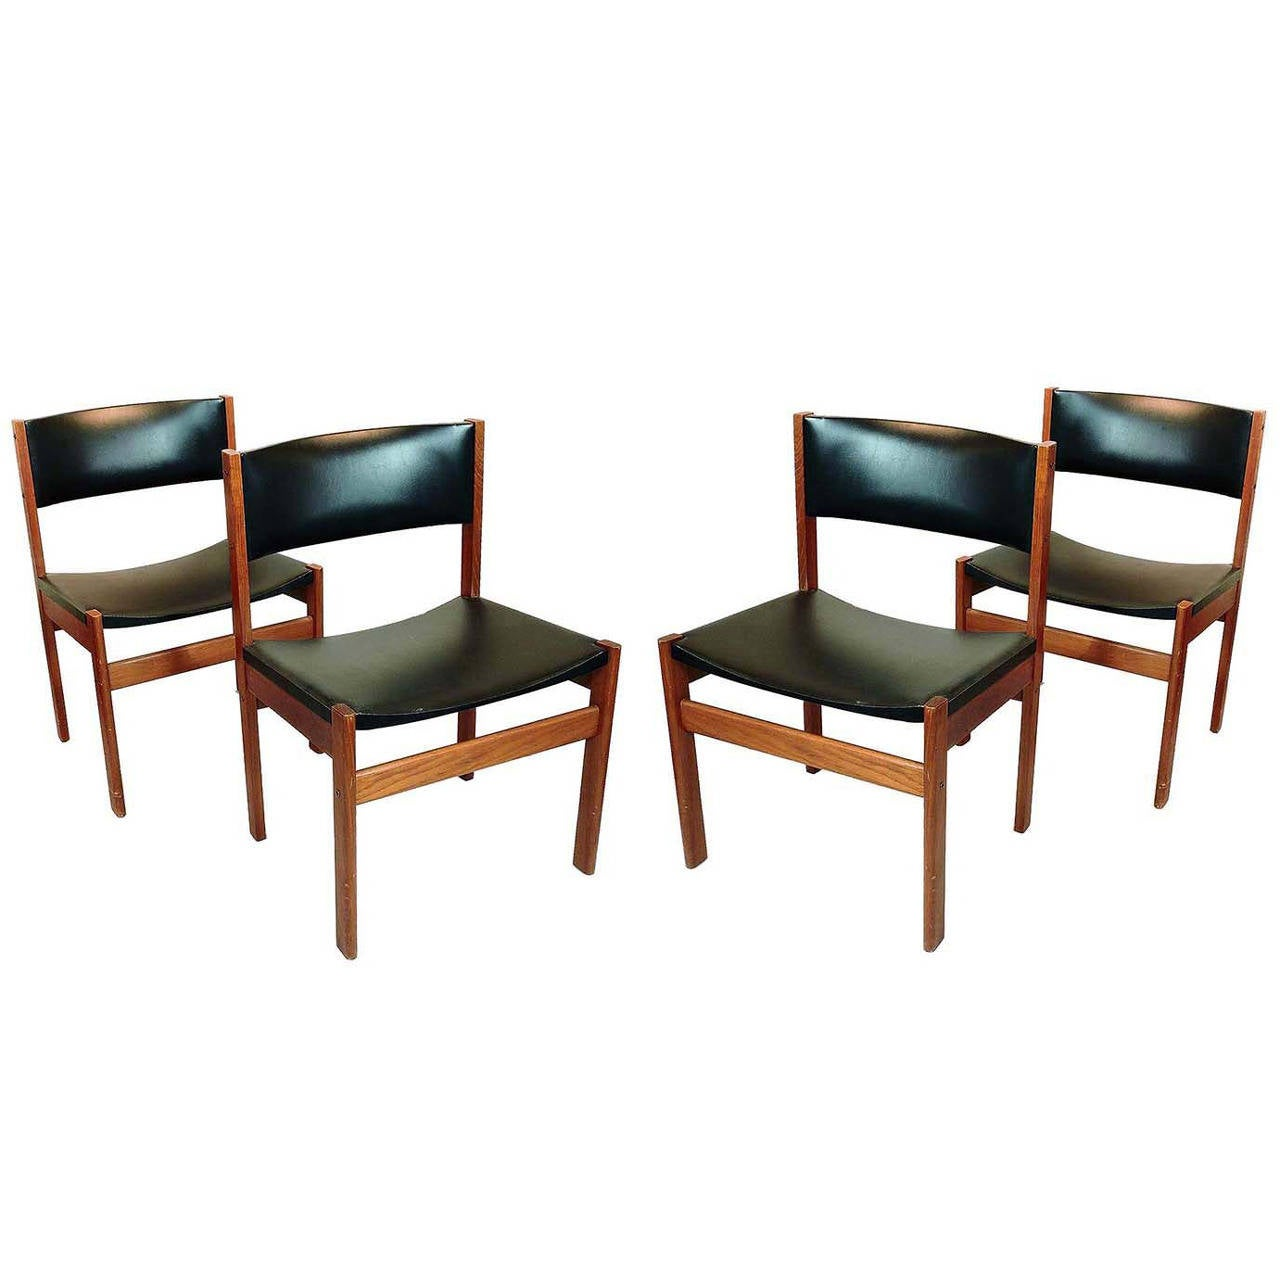 Danish Modern Dining Chairs For Sale Set Of Four Danish Mid Century Modern Teak And Leather Dining Chairs